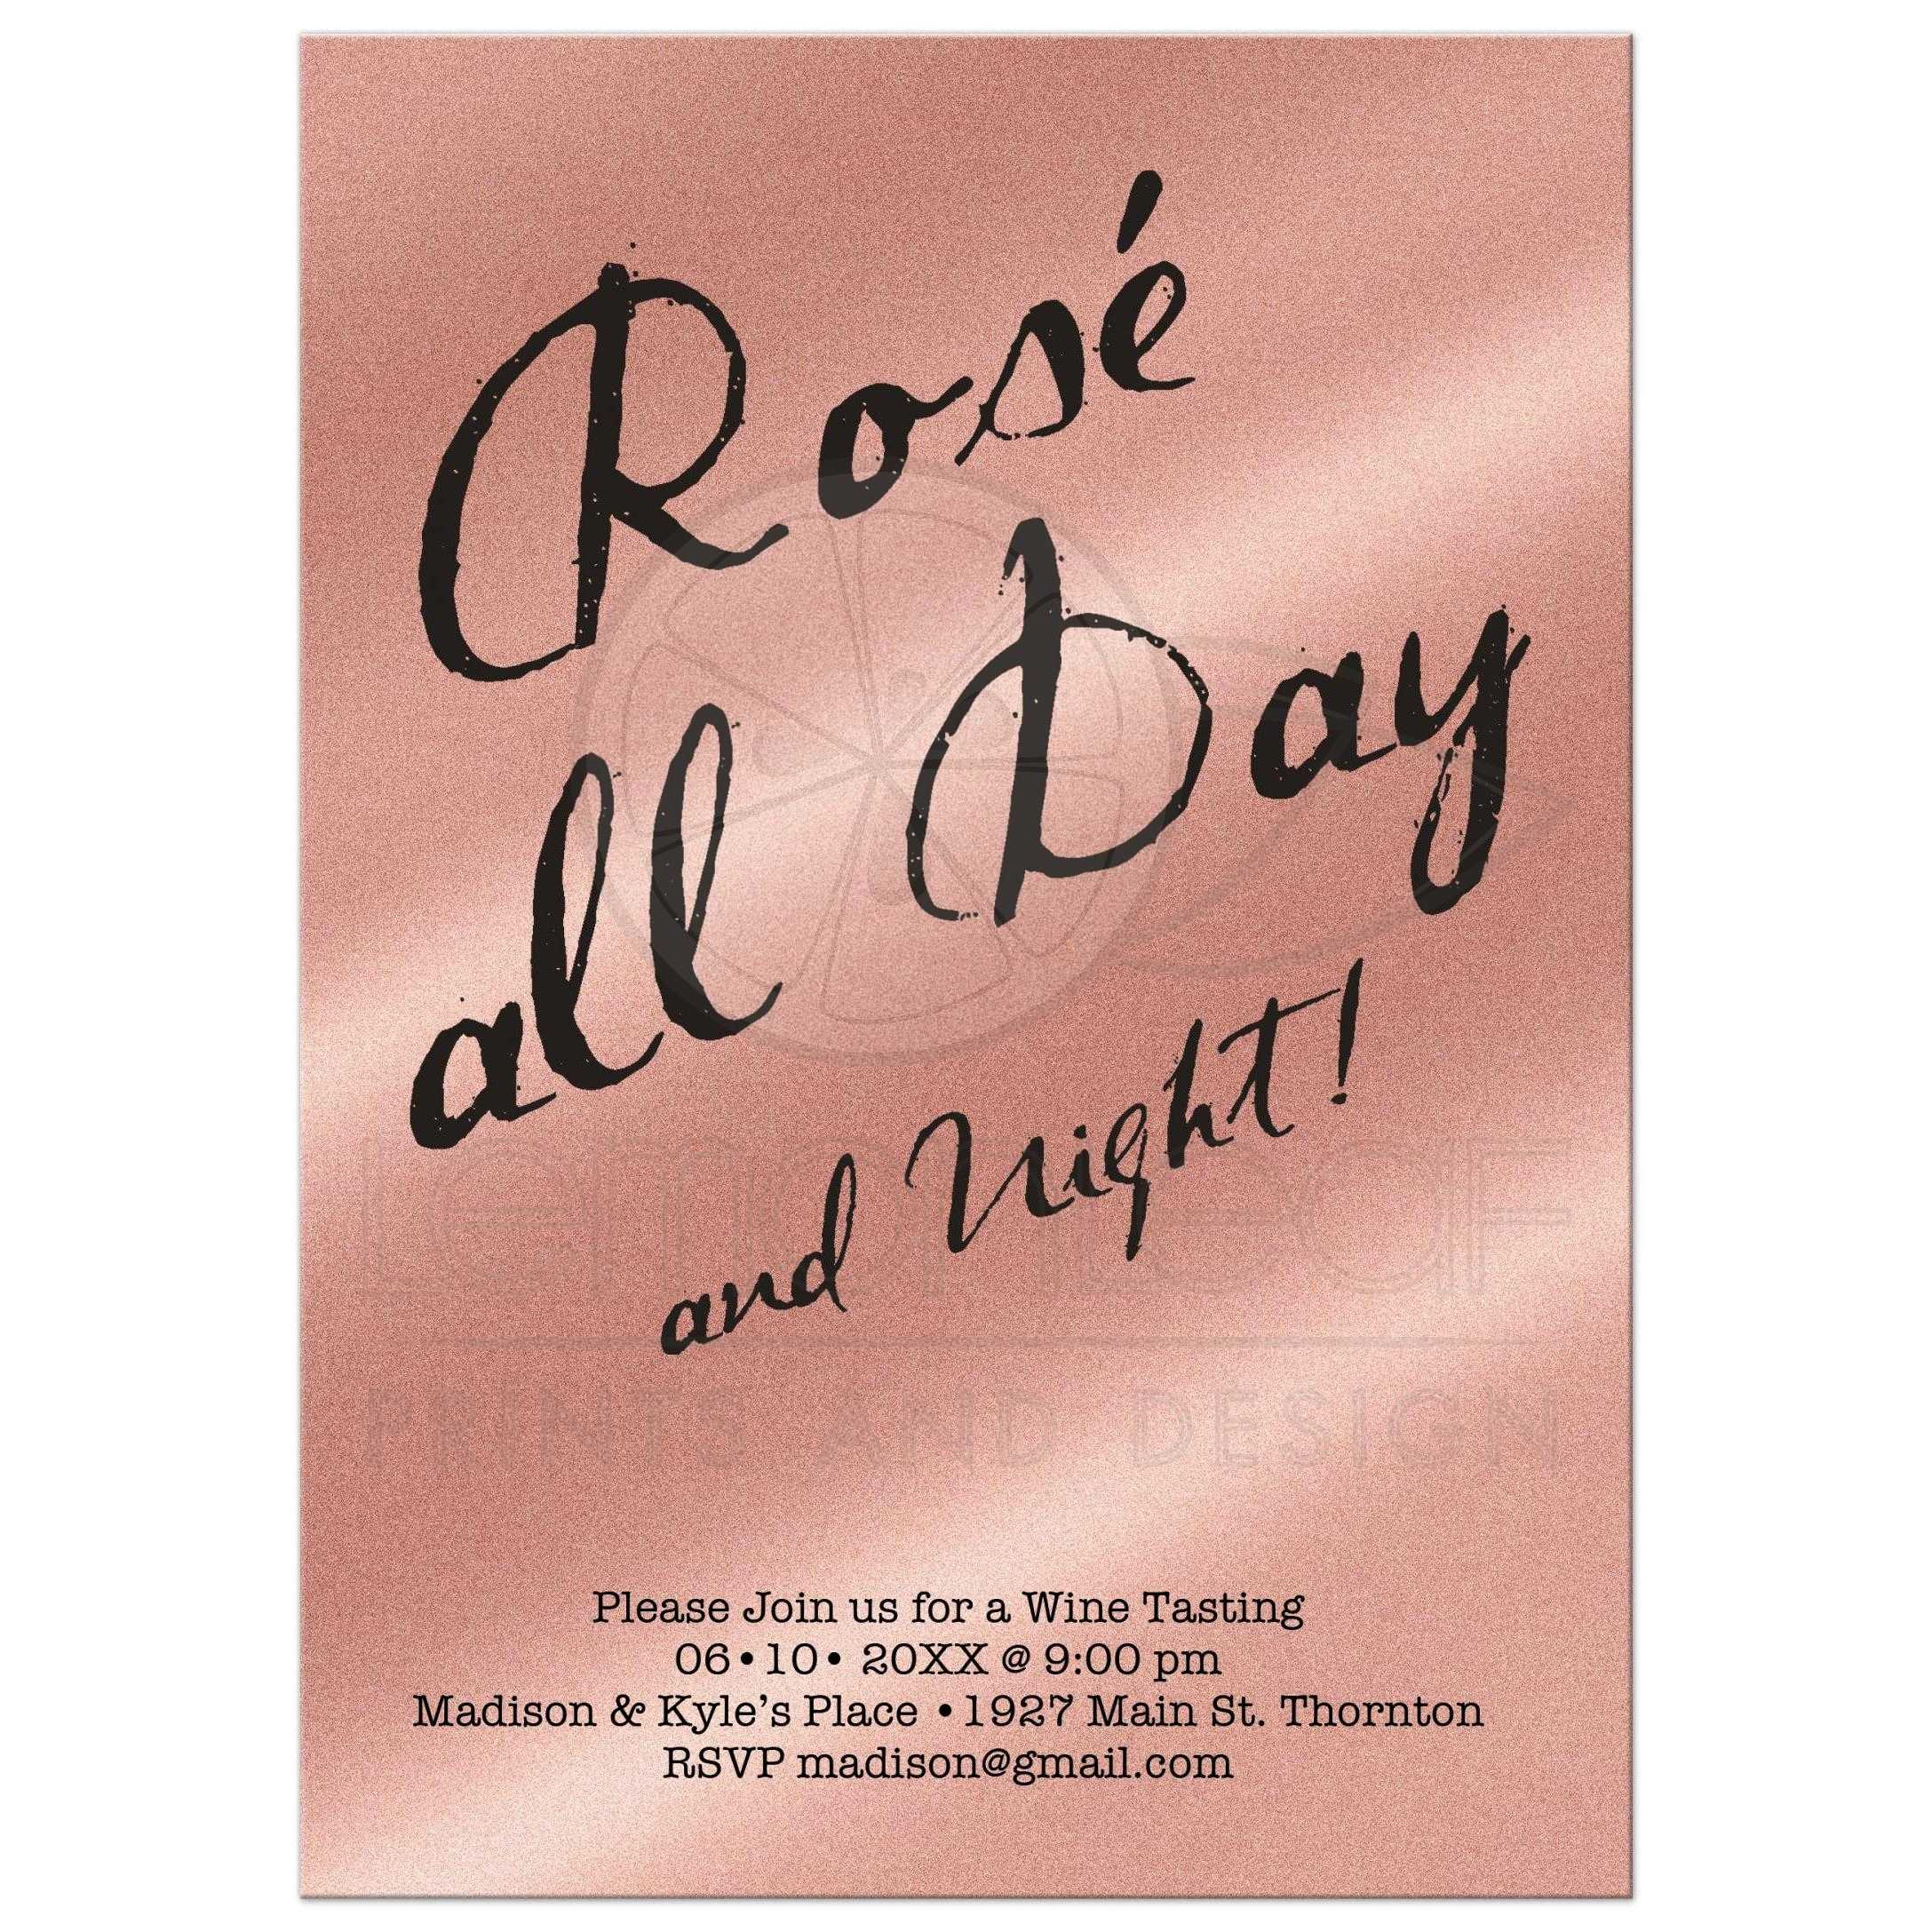 rosé all day and night wine tasting party invitation